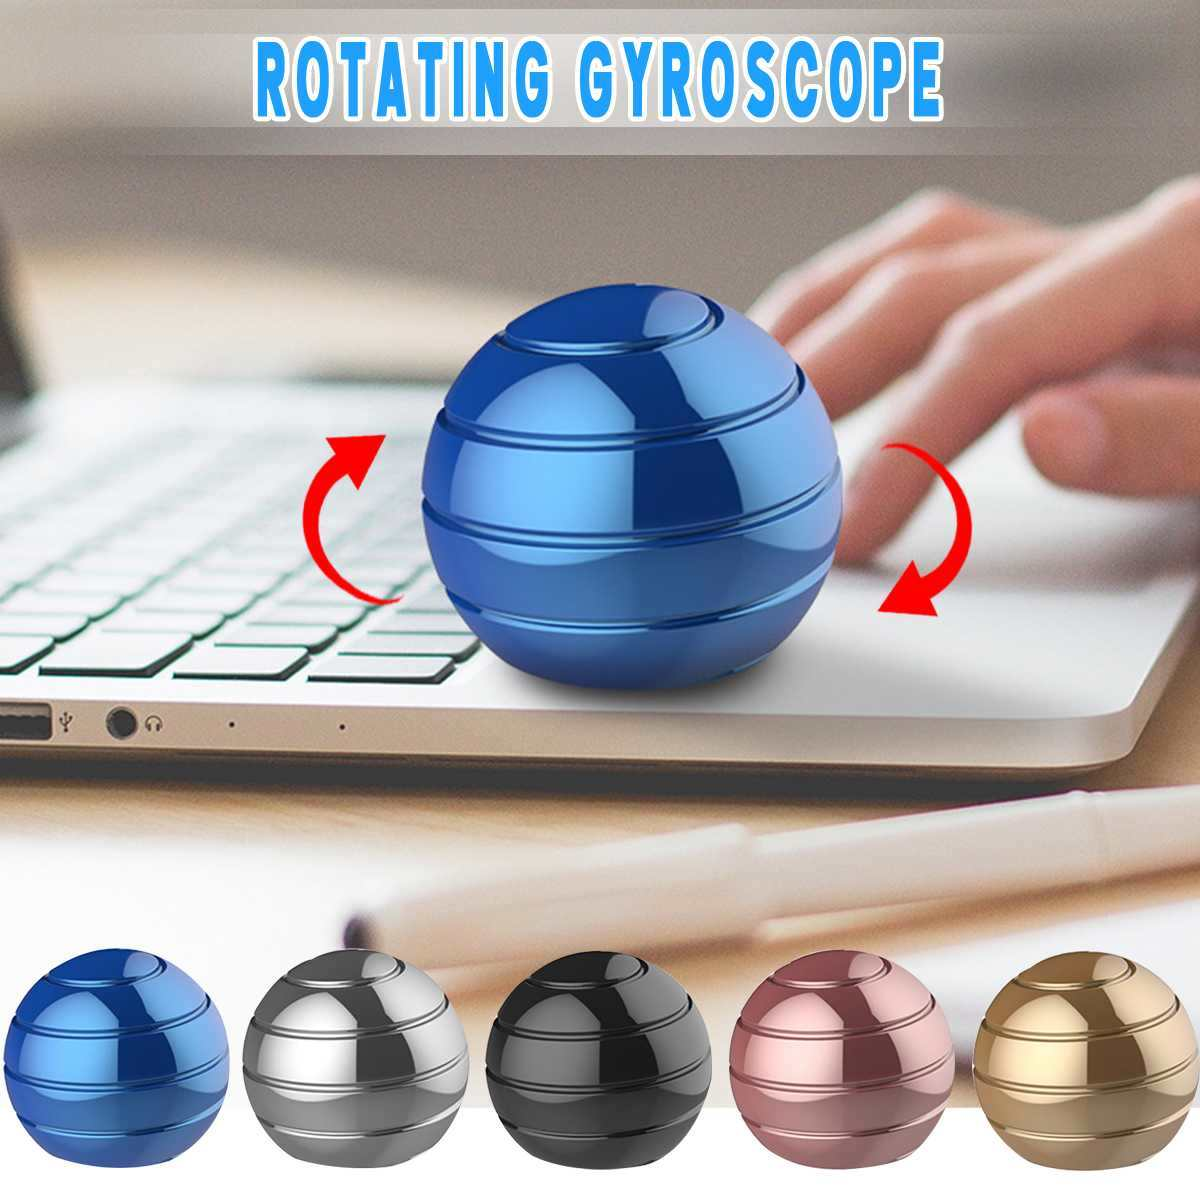 Desktop Decompression Rotating Spherical Gyroscope Metal Spinning Top Office Desk Fidget Finger Toys Office Pressure Relief Gift